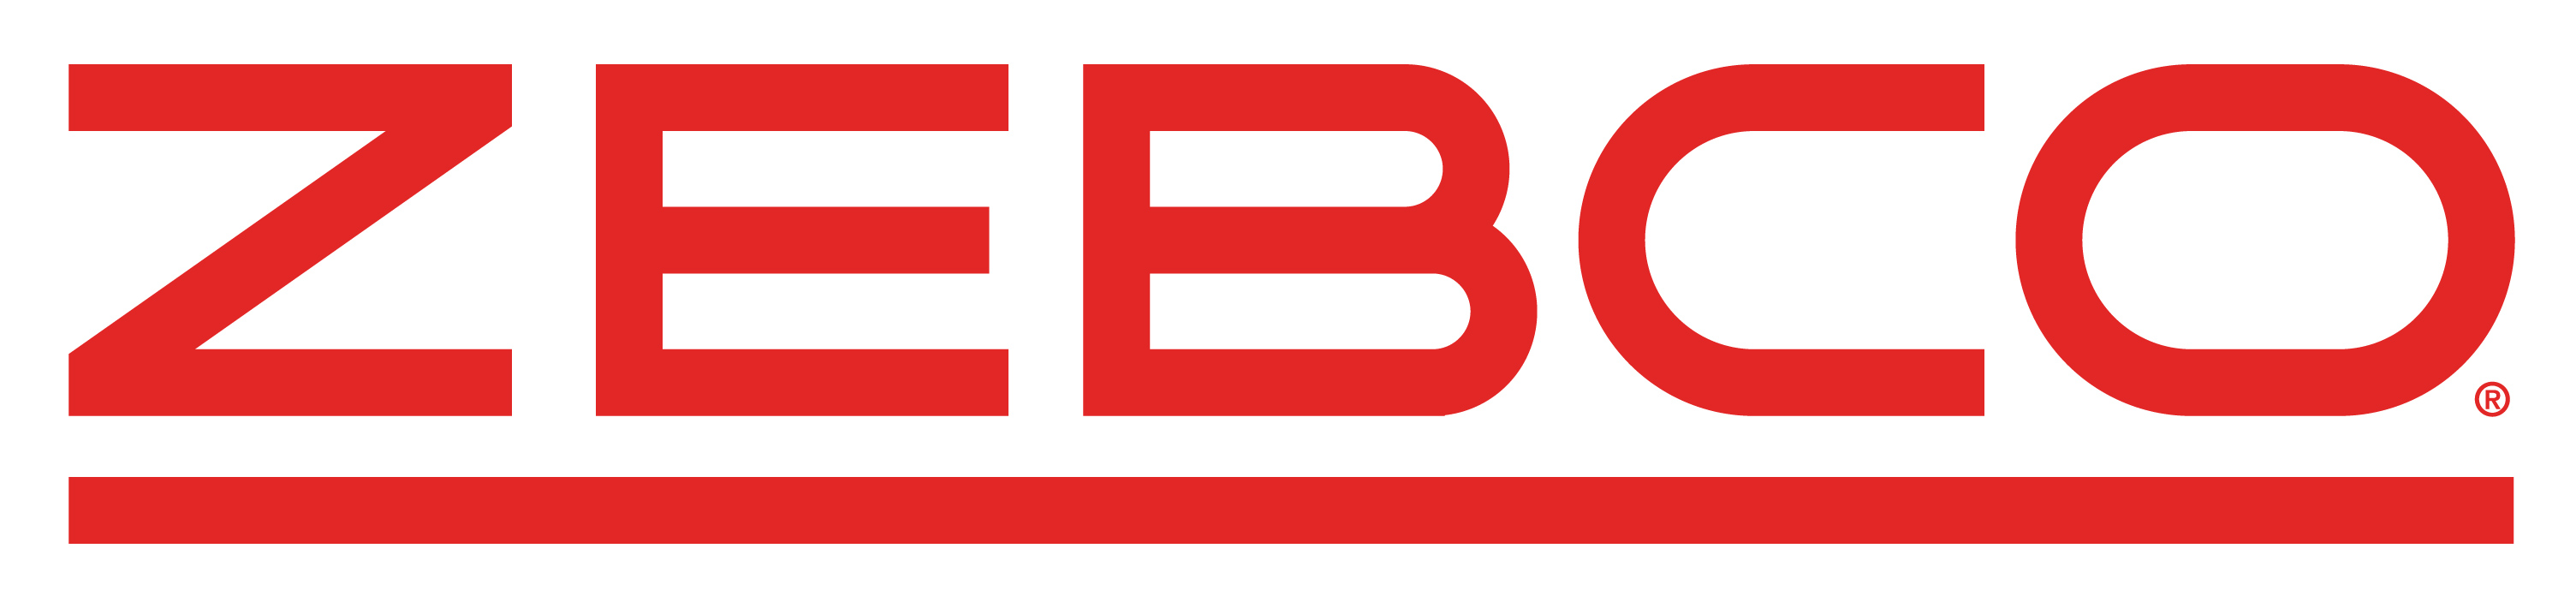 Zebco Brands